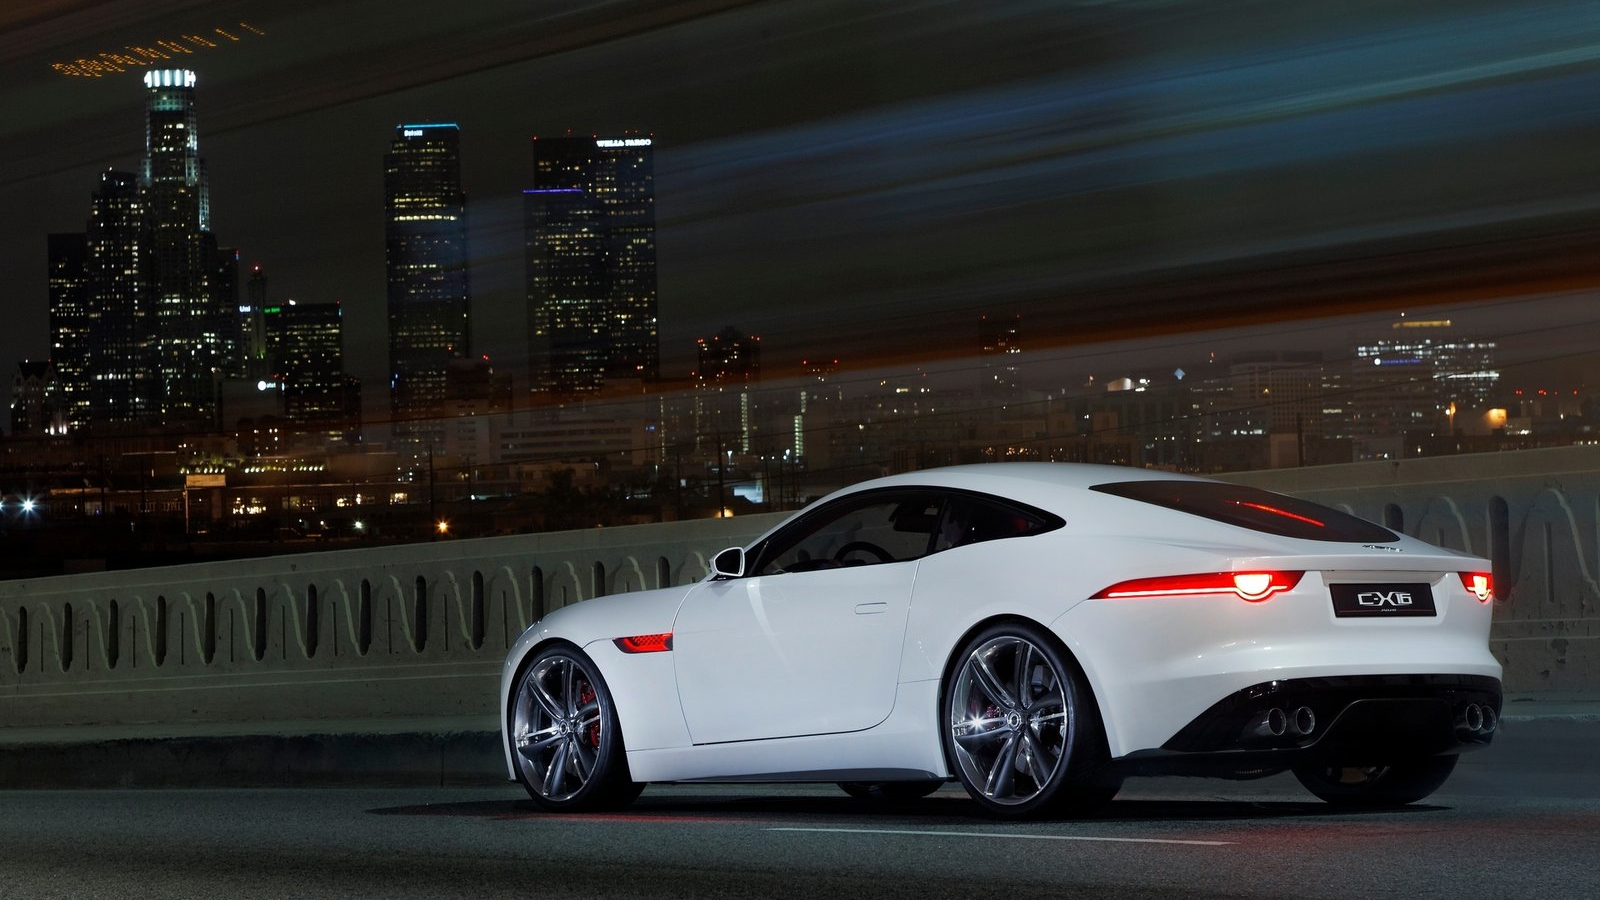 jaguar f type review and photos. Black Bedroom Furniture Sets. Home Design Ideas